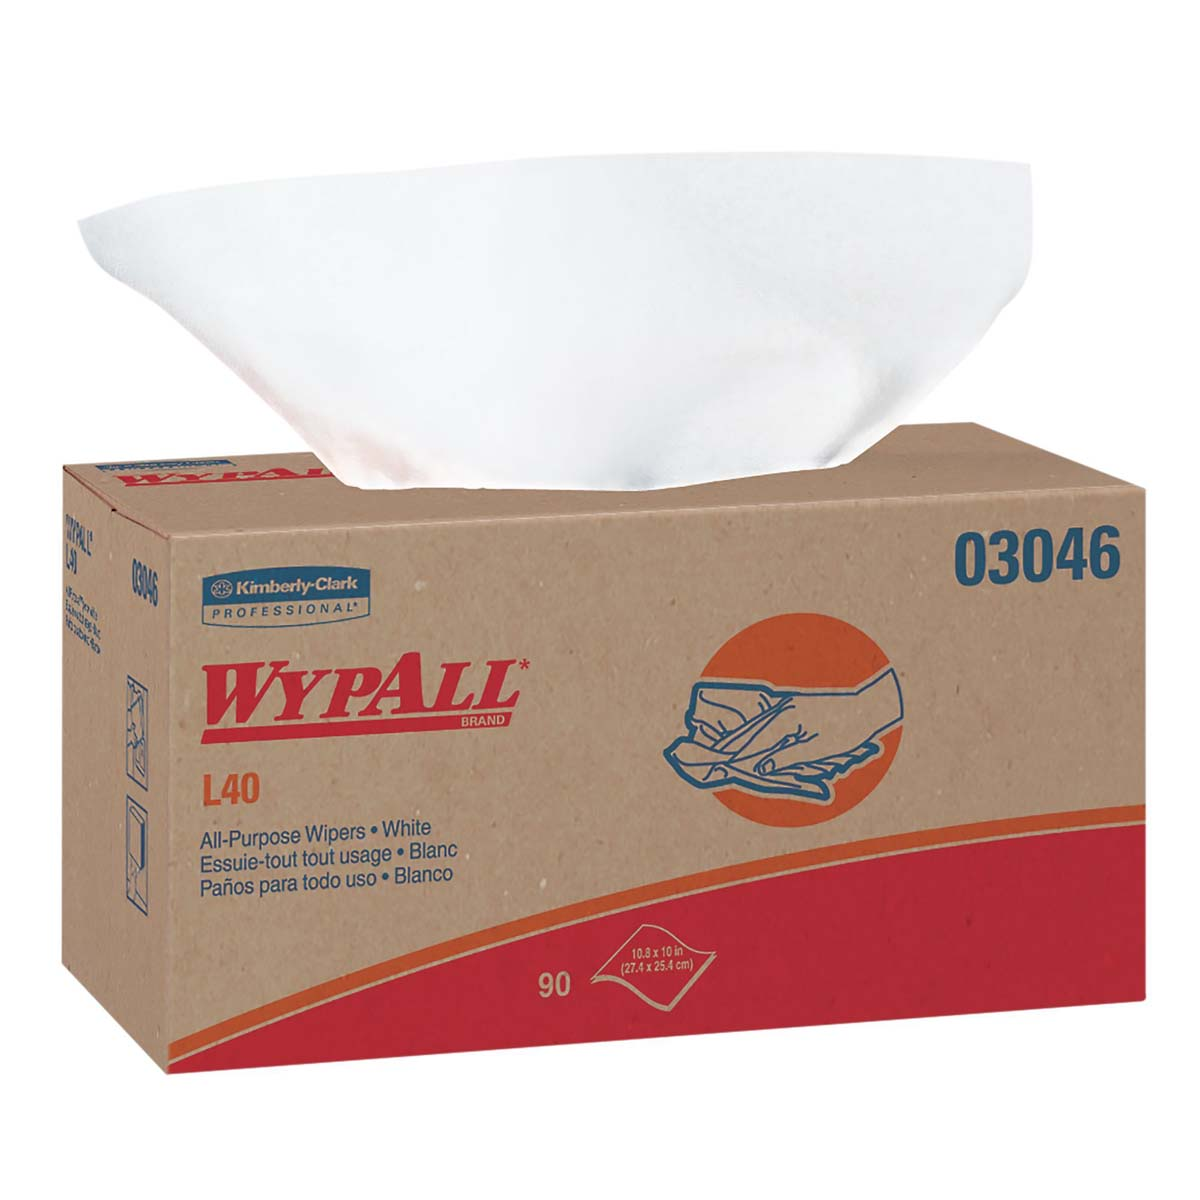 WypAll L40 Disposable Cleaning and Drying Towels (03046), Limited Use Wipers, White, 9 Pop Up Boxes per Case, 90 Sheets per Box, 810 Sheets Total